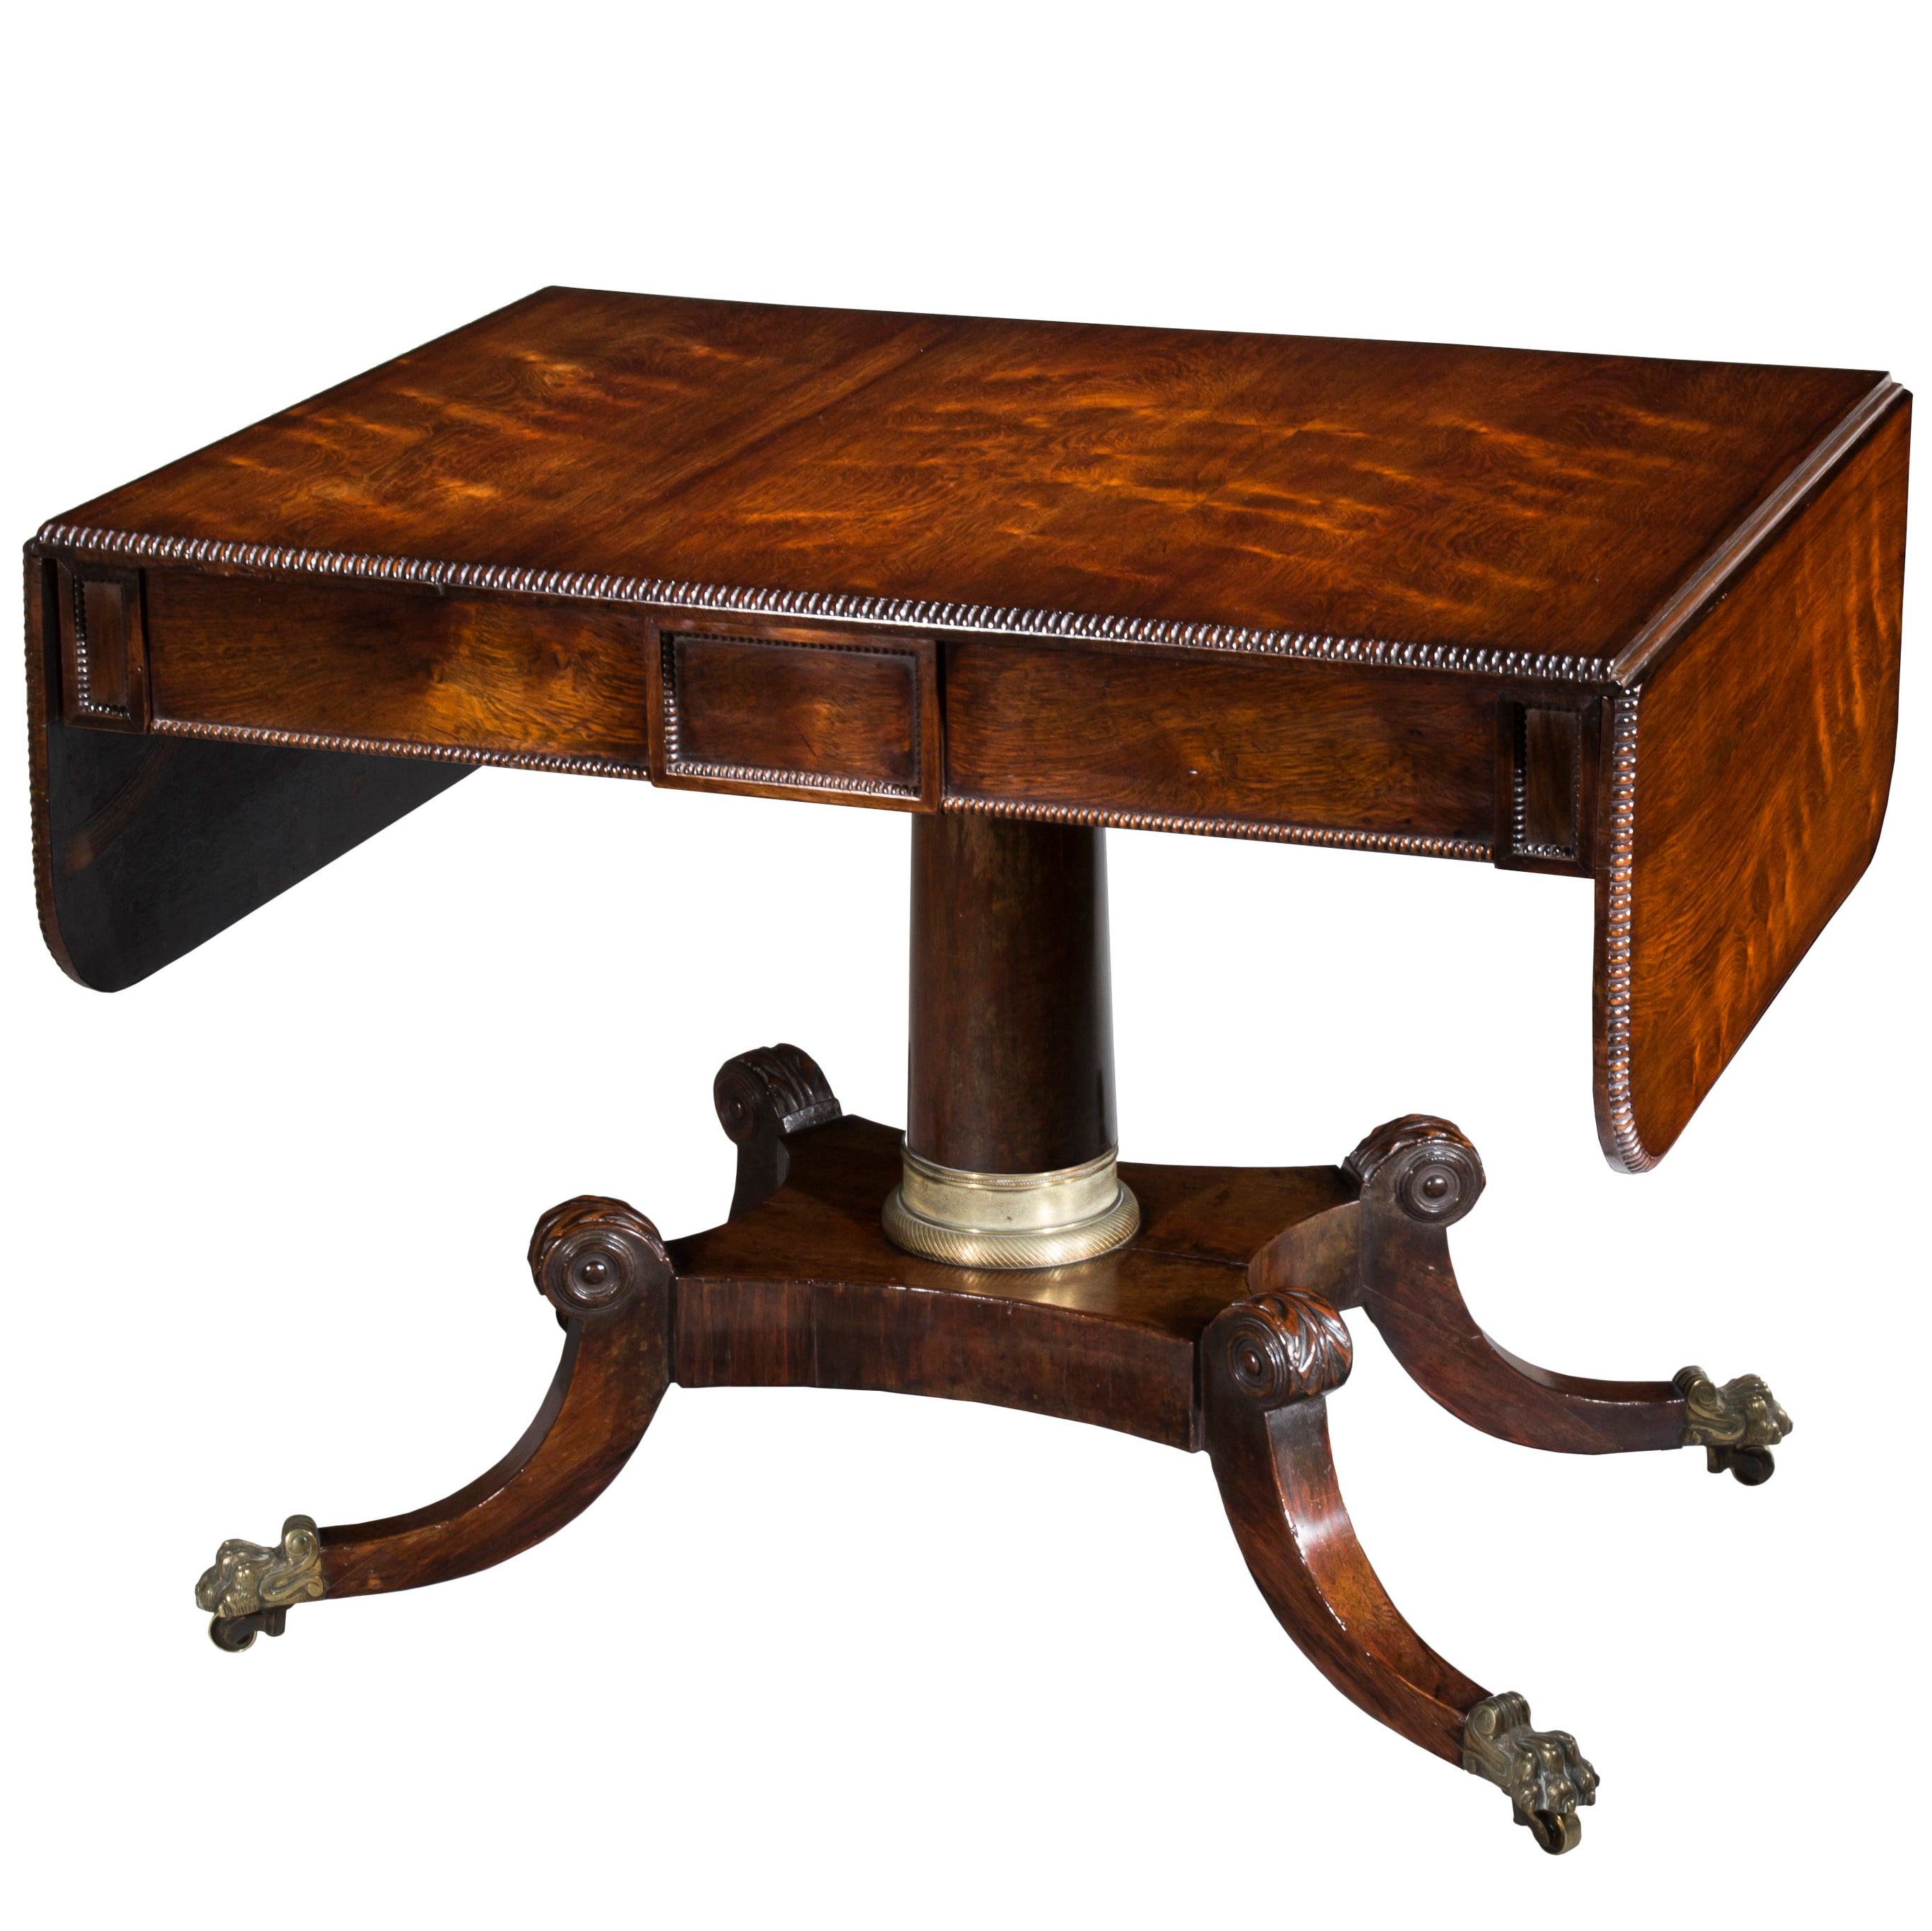 Sofa With French Writing English 19th Century Regency Sofa Table Or Writing Table